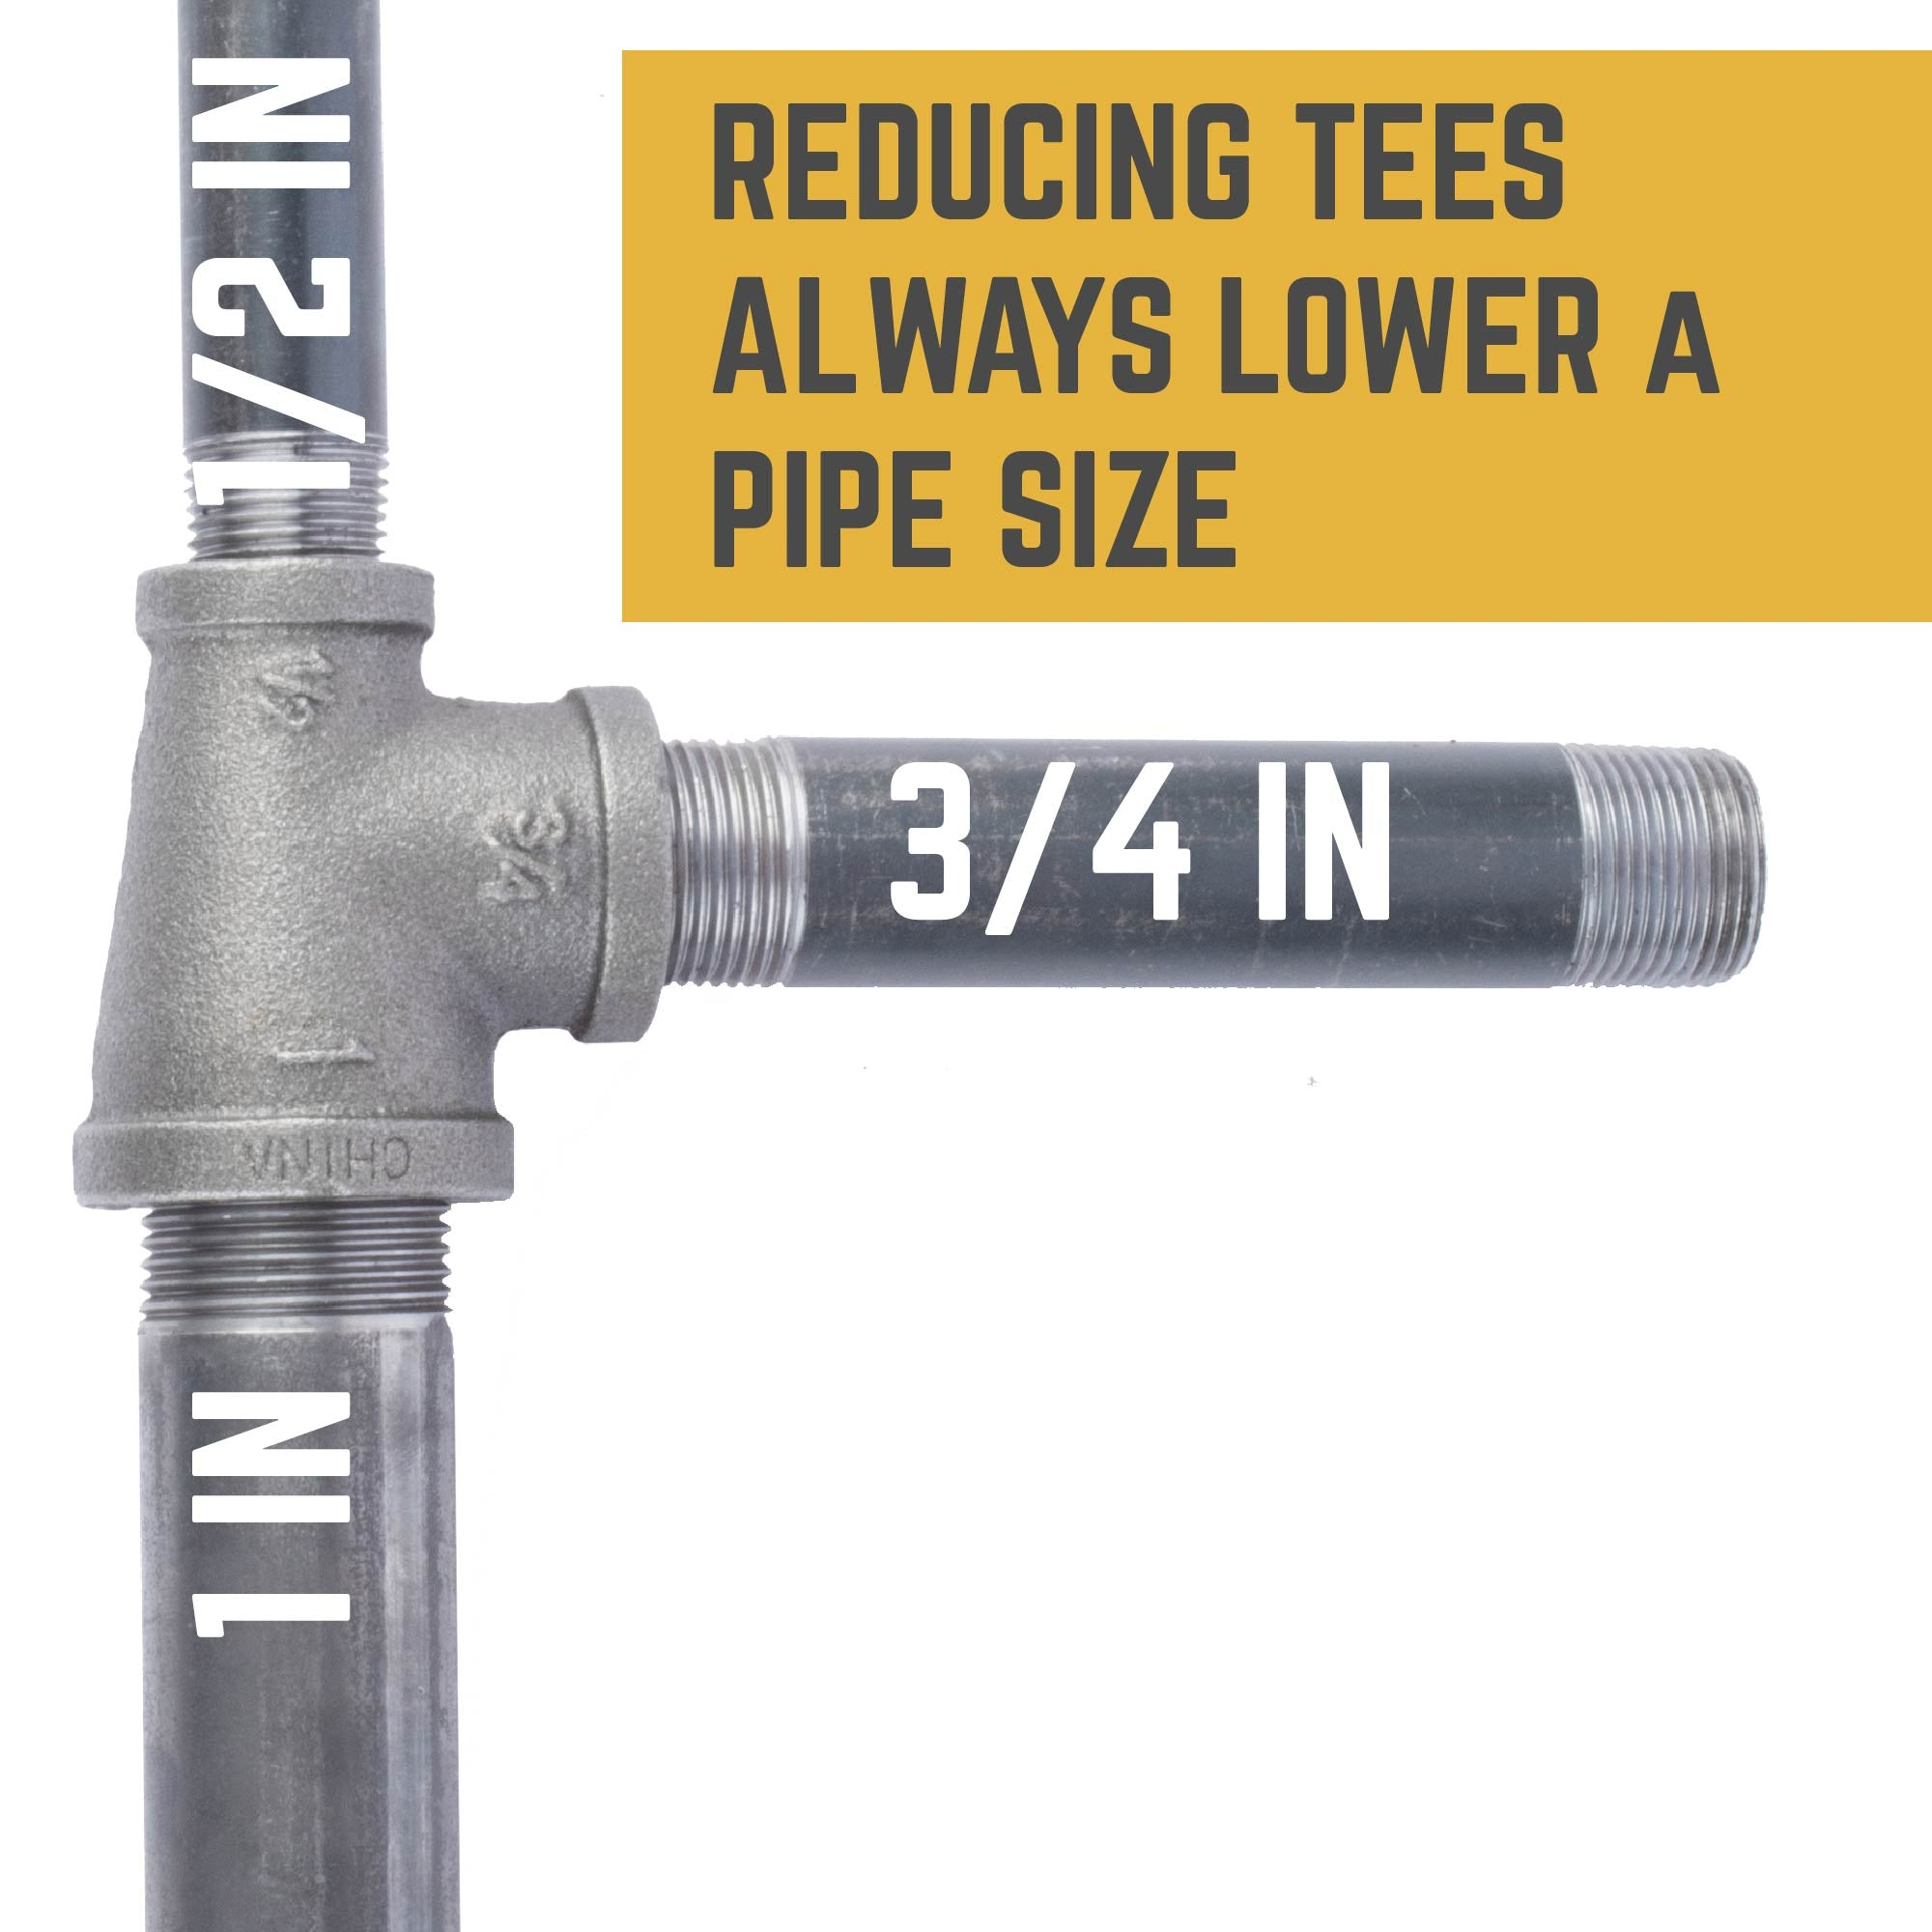 1 in. X 1/2 in. X 3/4 in. Reducing Tee - Pipe Decor